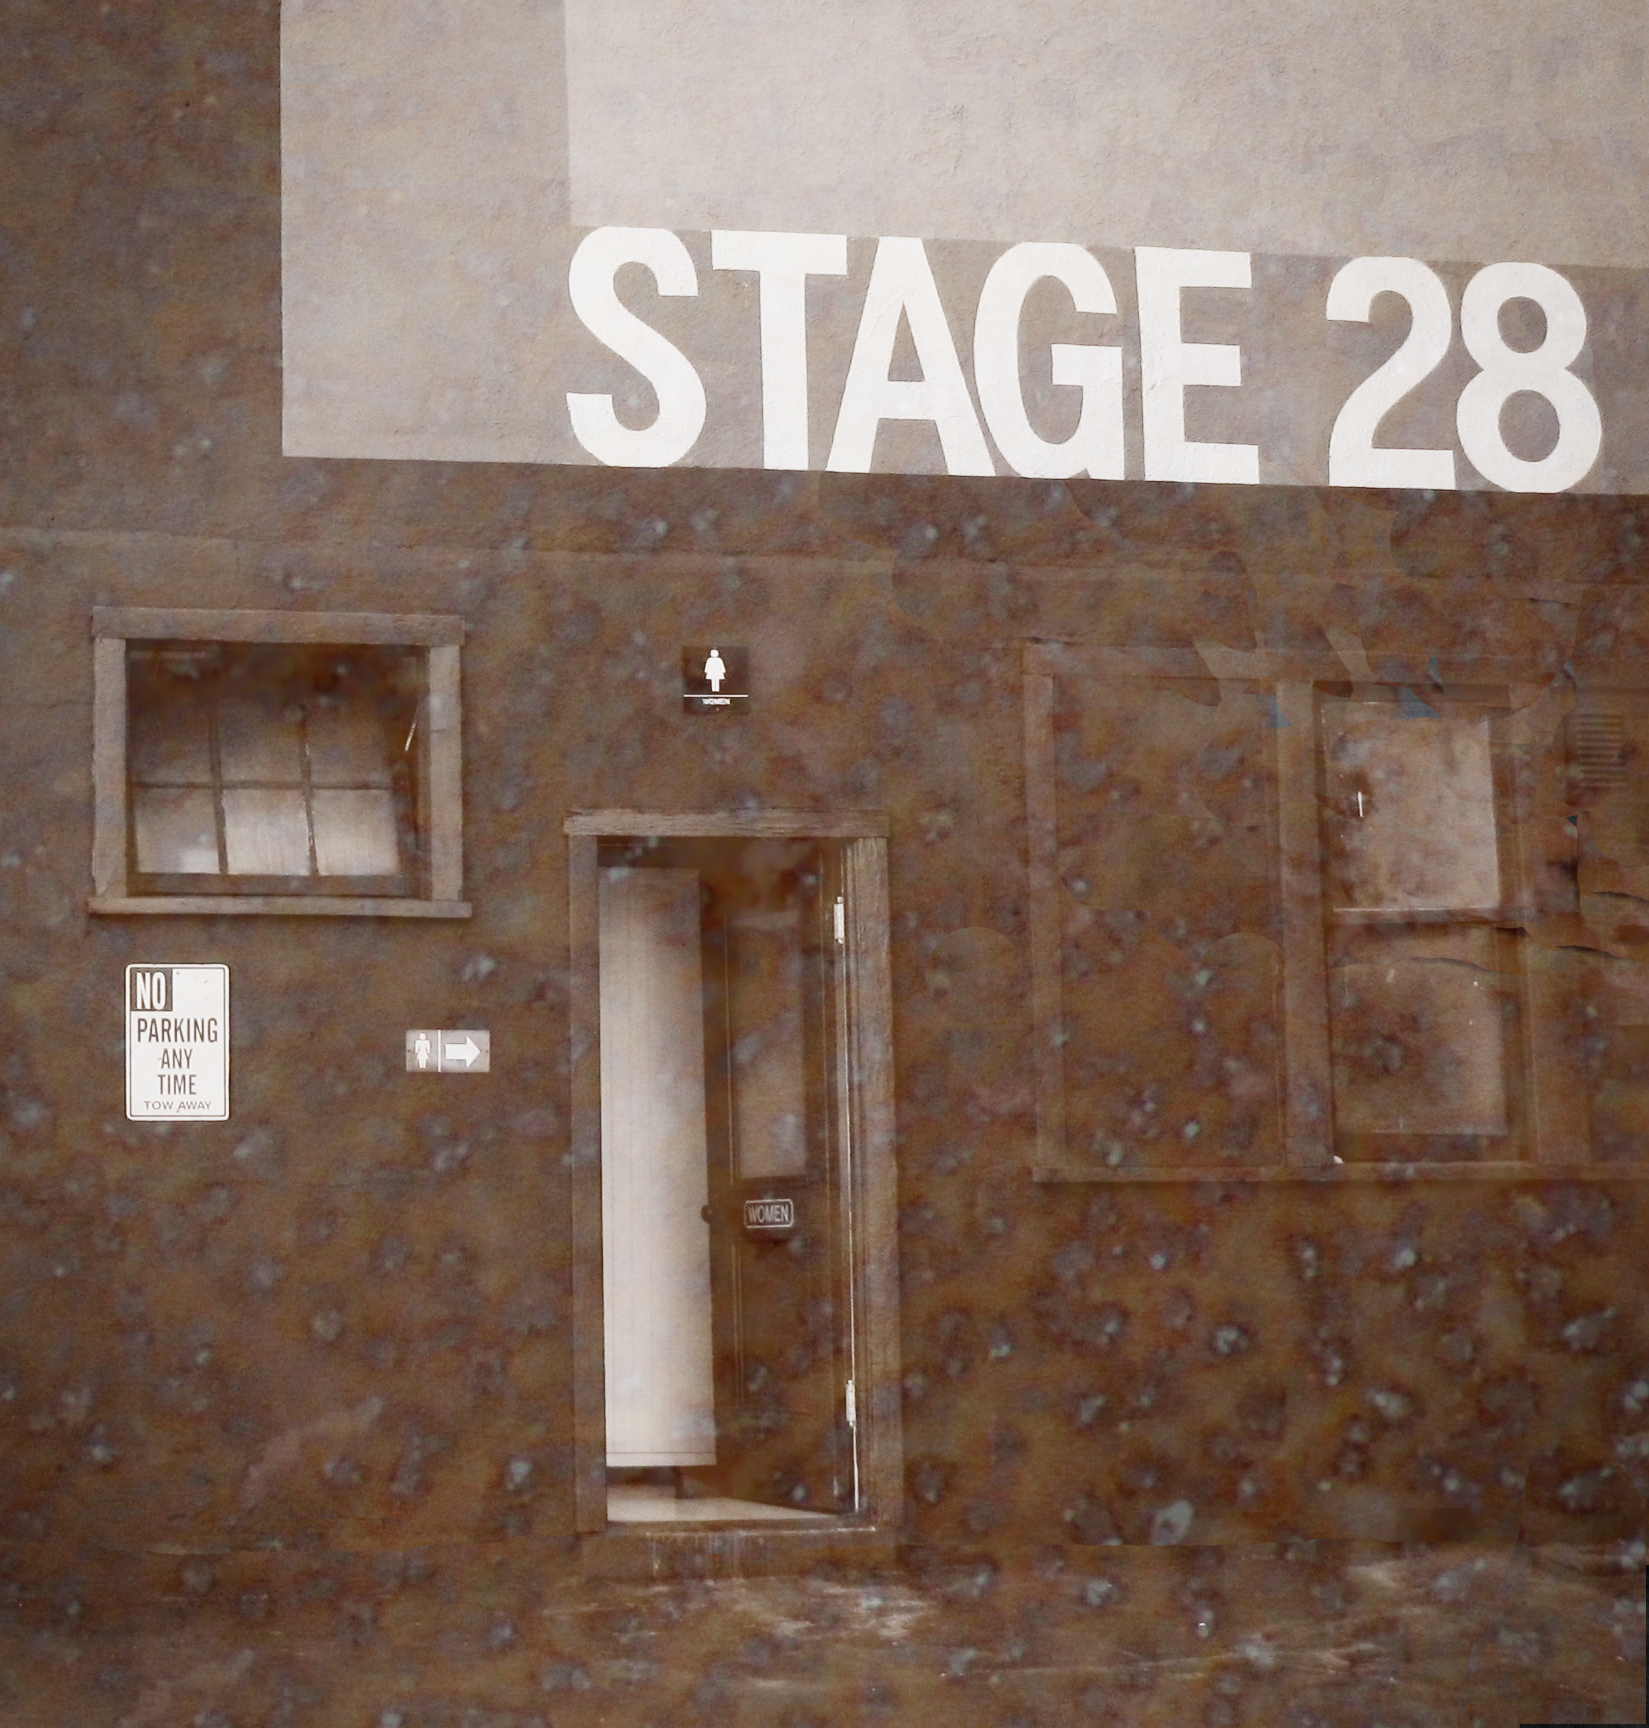 The exterior of Soundstage 28 at Universal Studios Hollywood, commonly called the